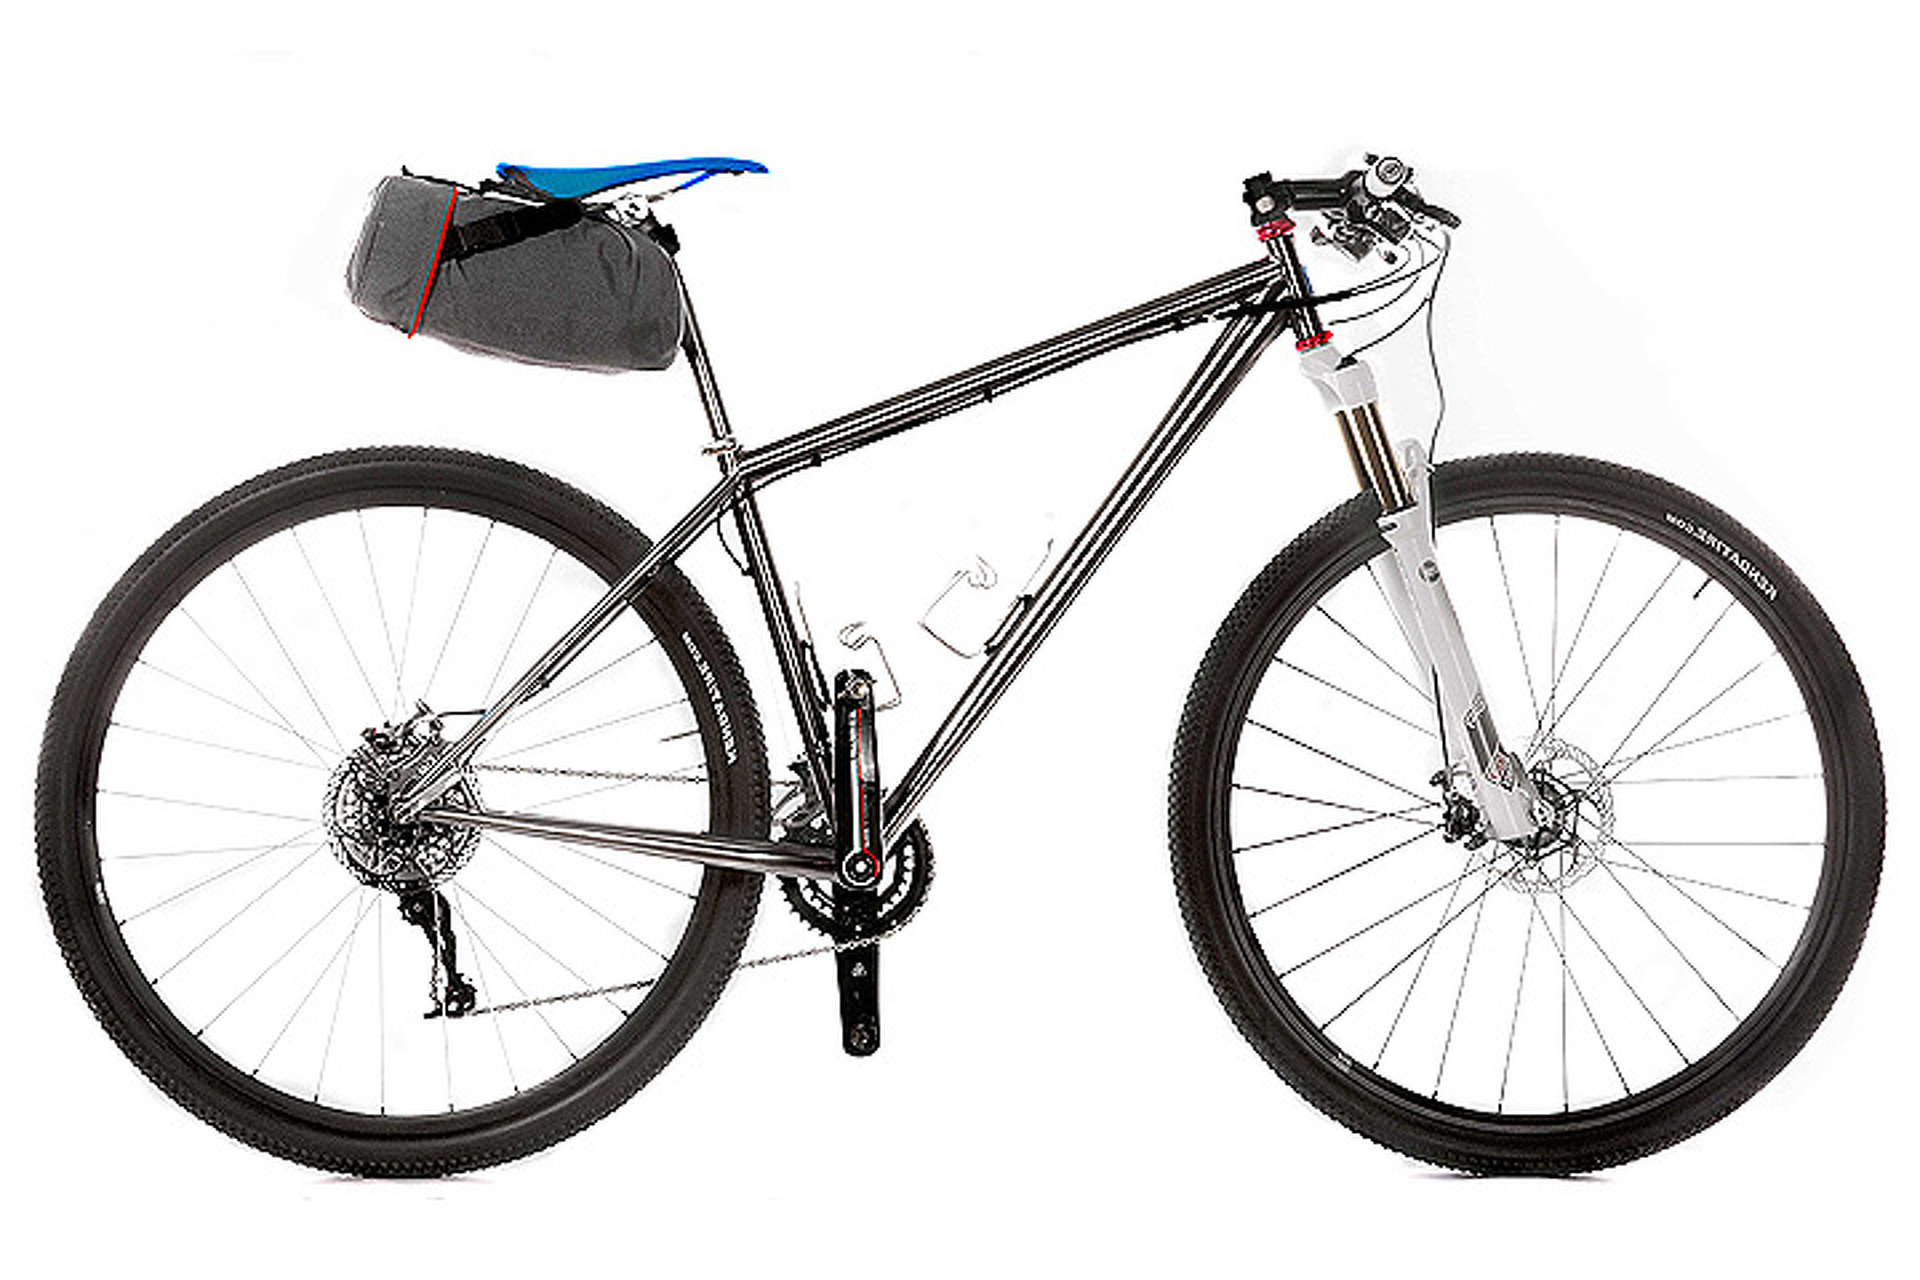 TrunkMonkey is the Inflatable Solution to Your Bike Rack Woes